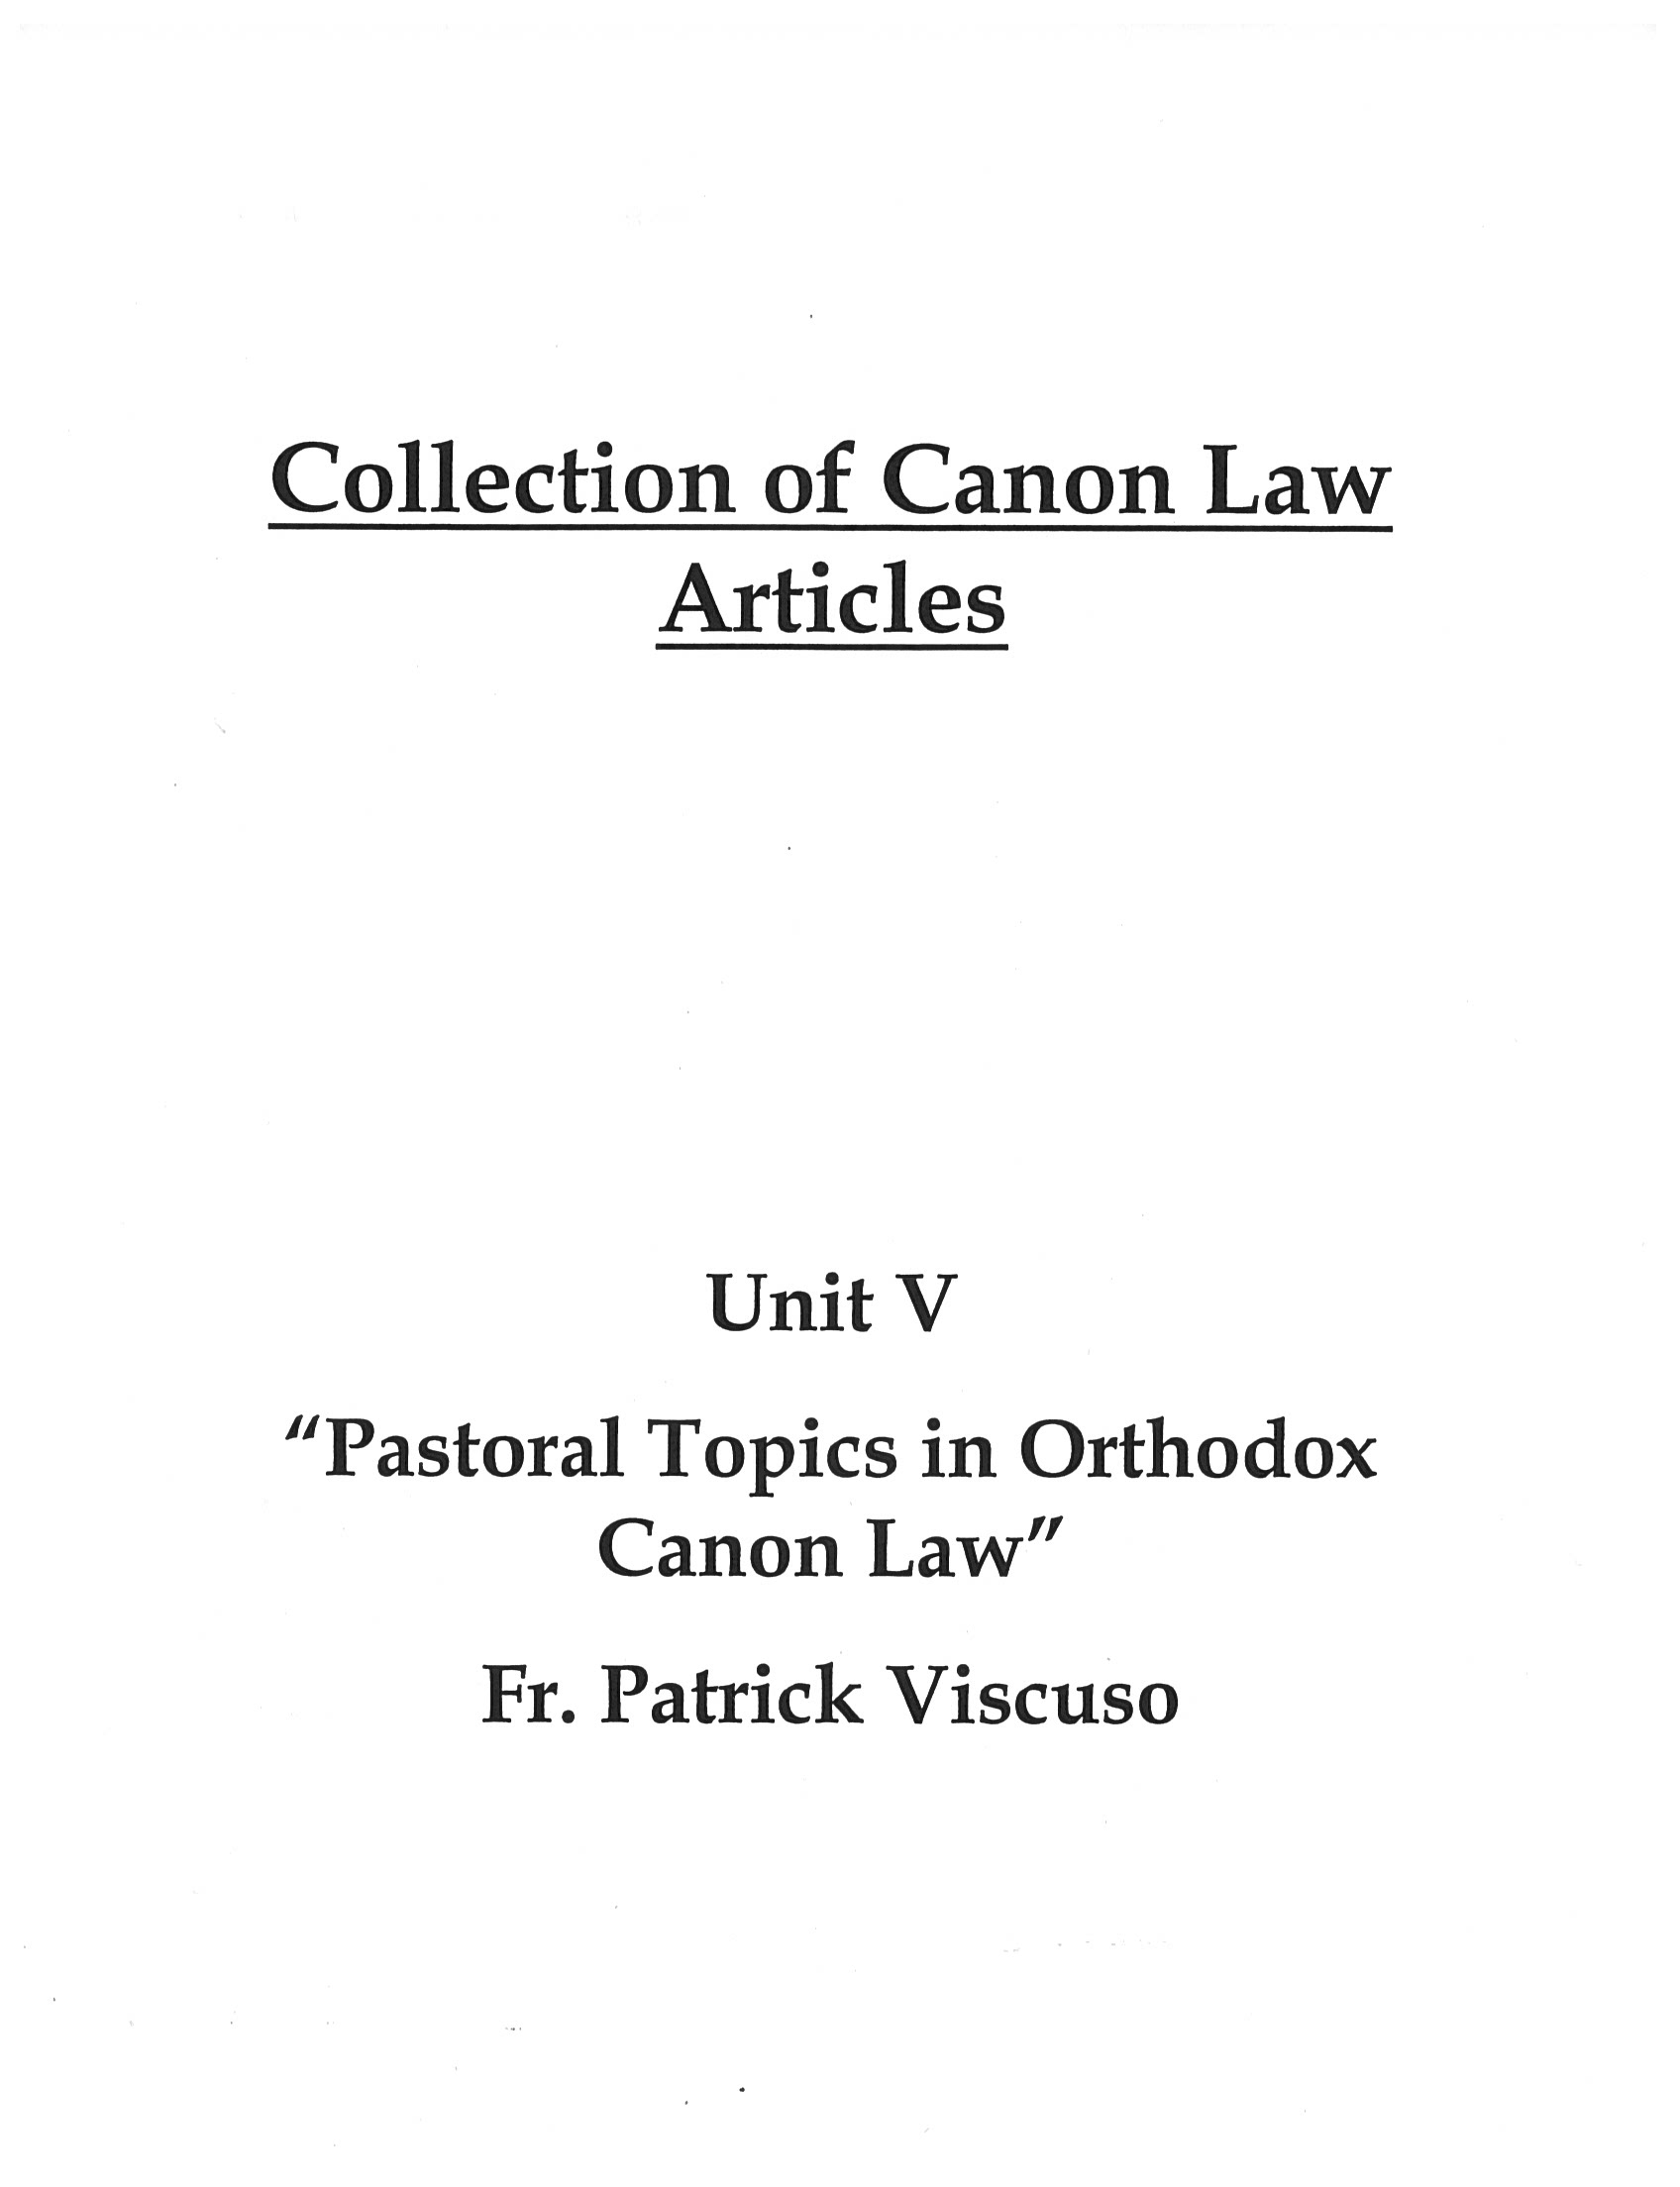 Collection of Articles for Unit 5: Pastoral Topics in Orthodox Canon Law